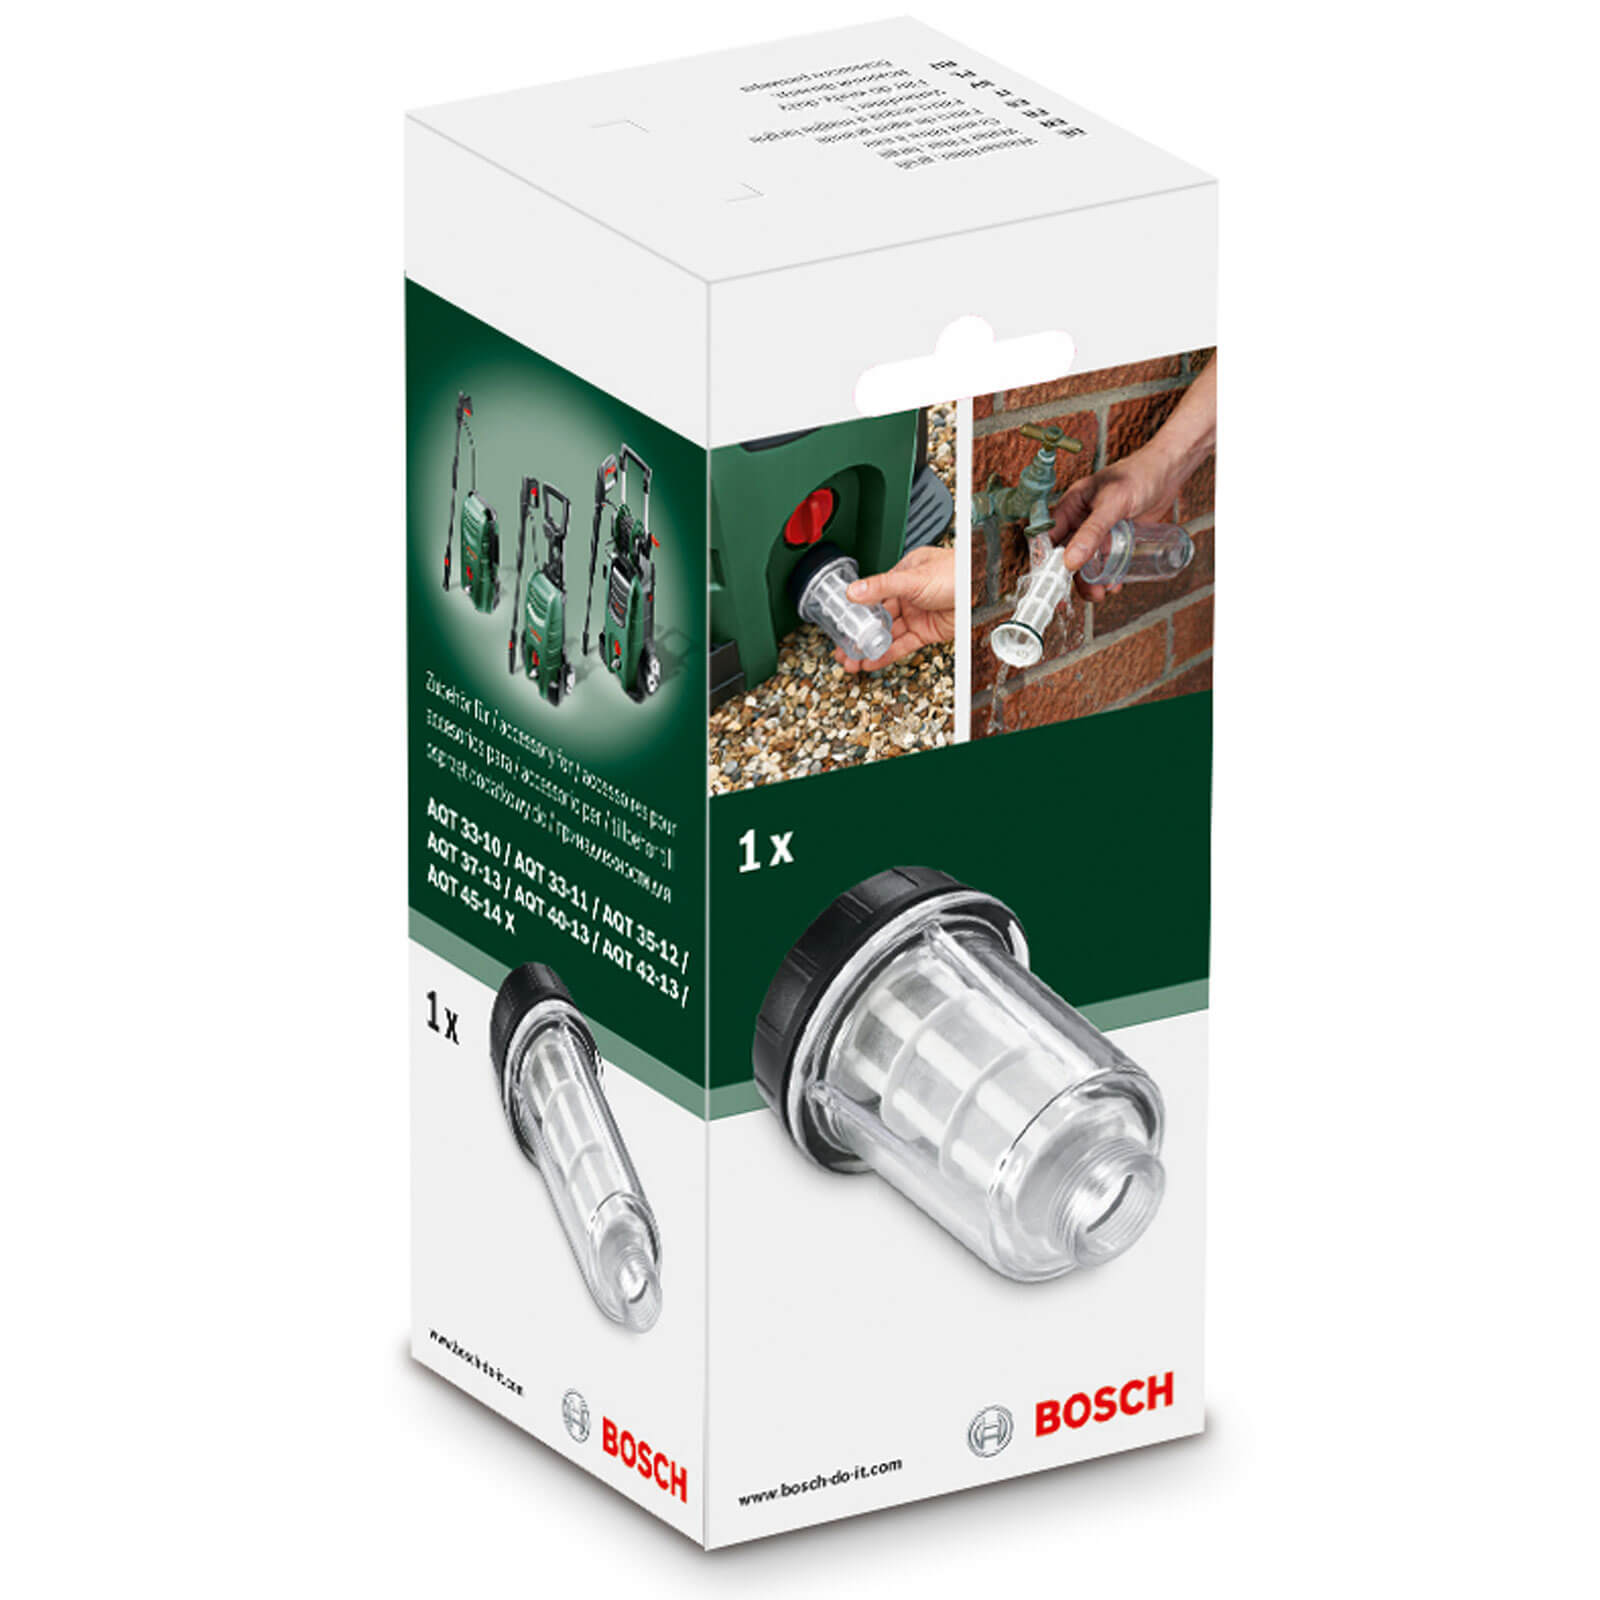 Bosch Large Water Filter for AQT Pressure Washers